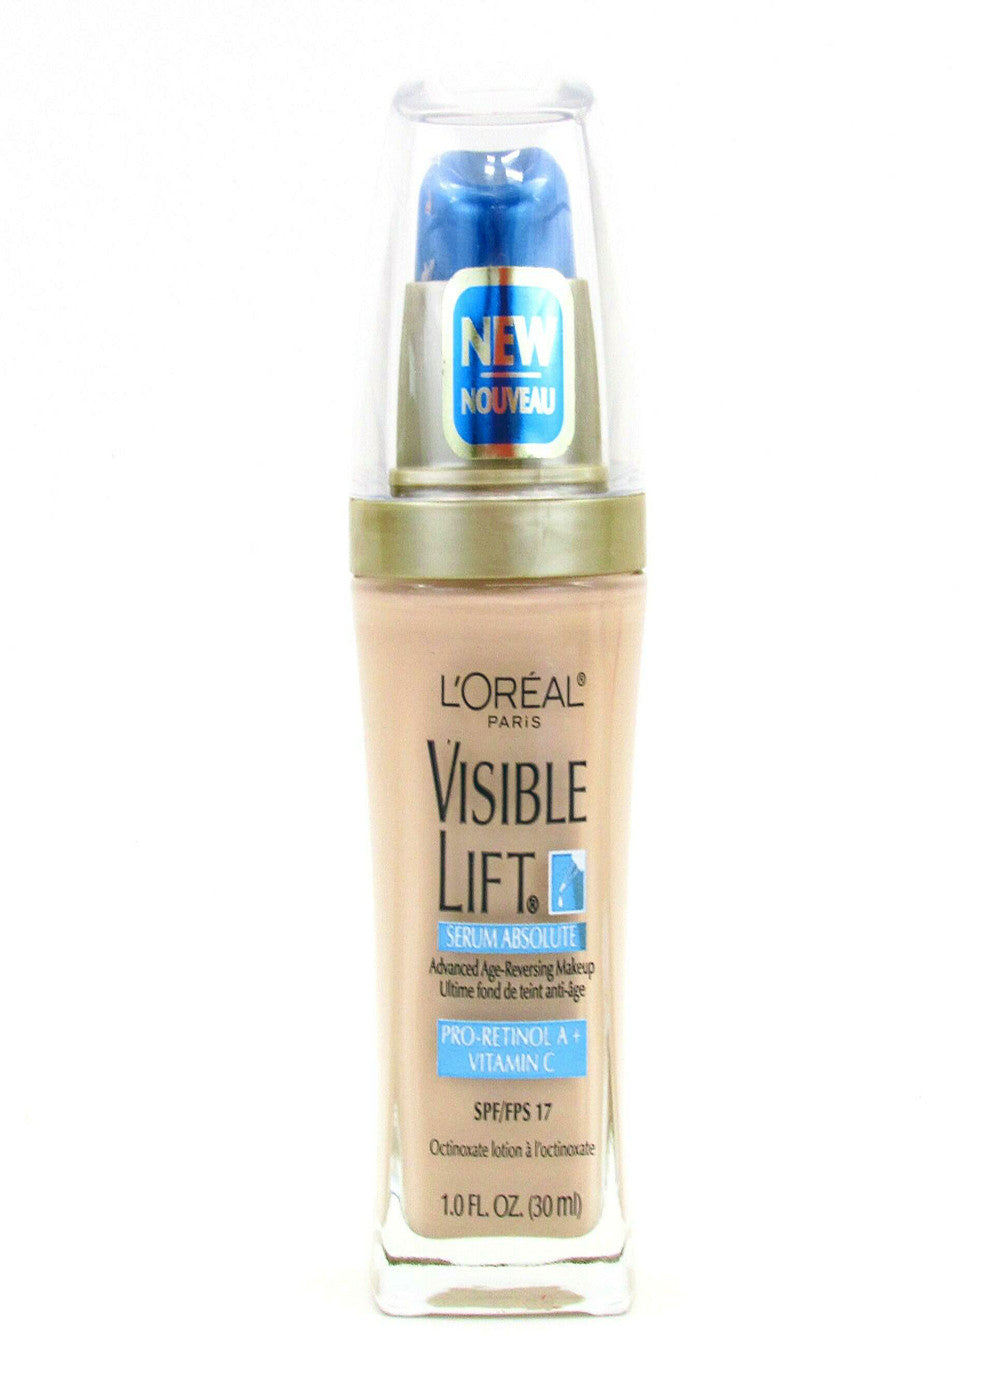 L'Oreal Visible Lift Serum Absolute Liquid Age Reversing Makeup SPF 17 #143 Soft Ivory